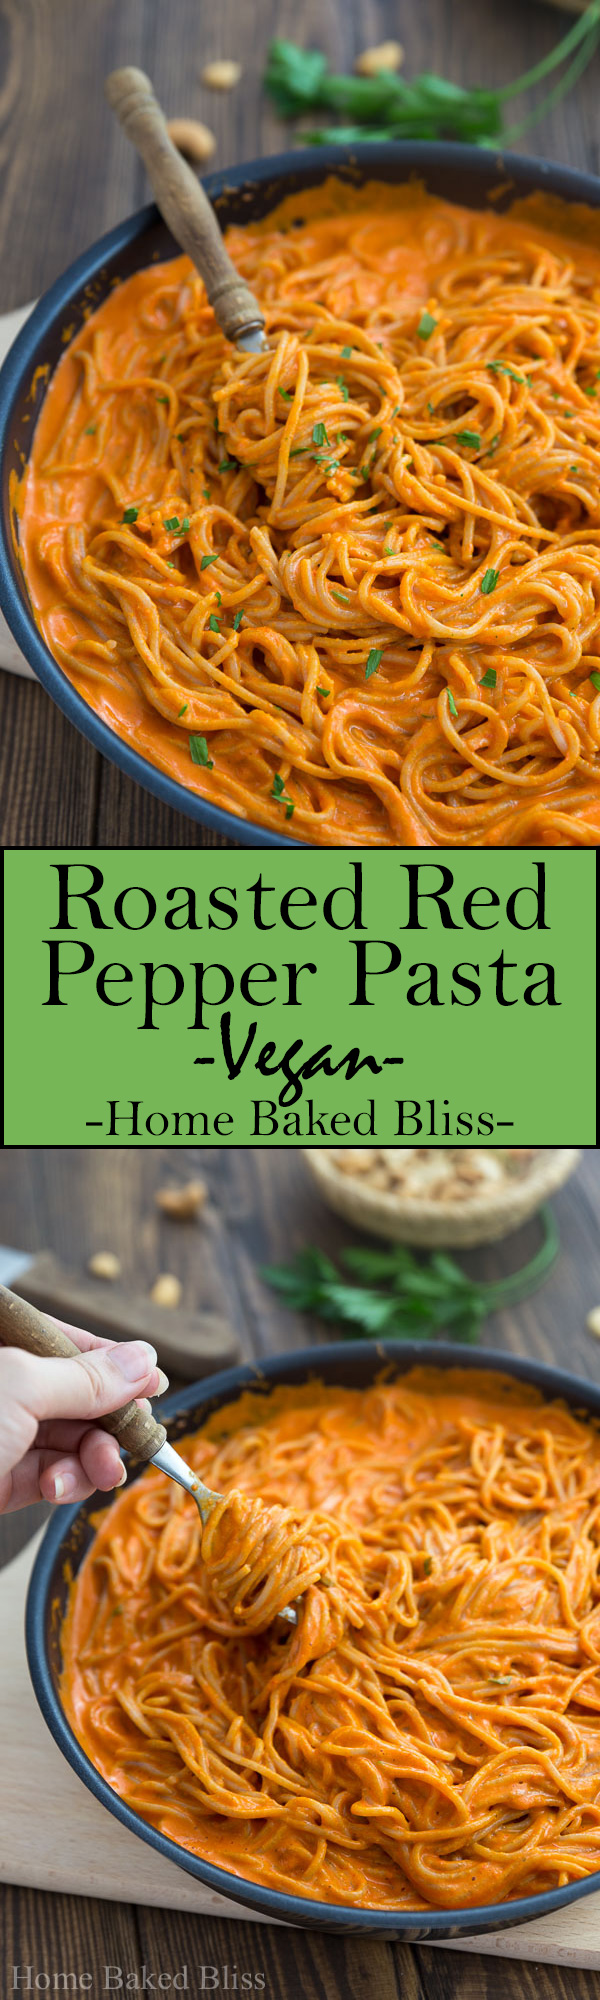 This roasted red bell pepper pasta is a quick and healthy vegan dinner you can make in a little over 30 minutes. #vegan #pasta #dinner #healthy | homebakedbliss.com